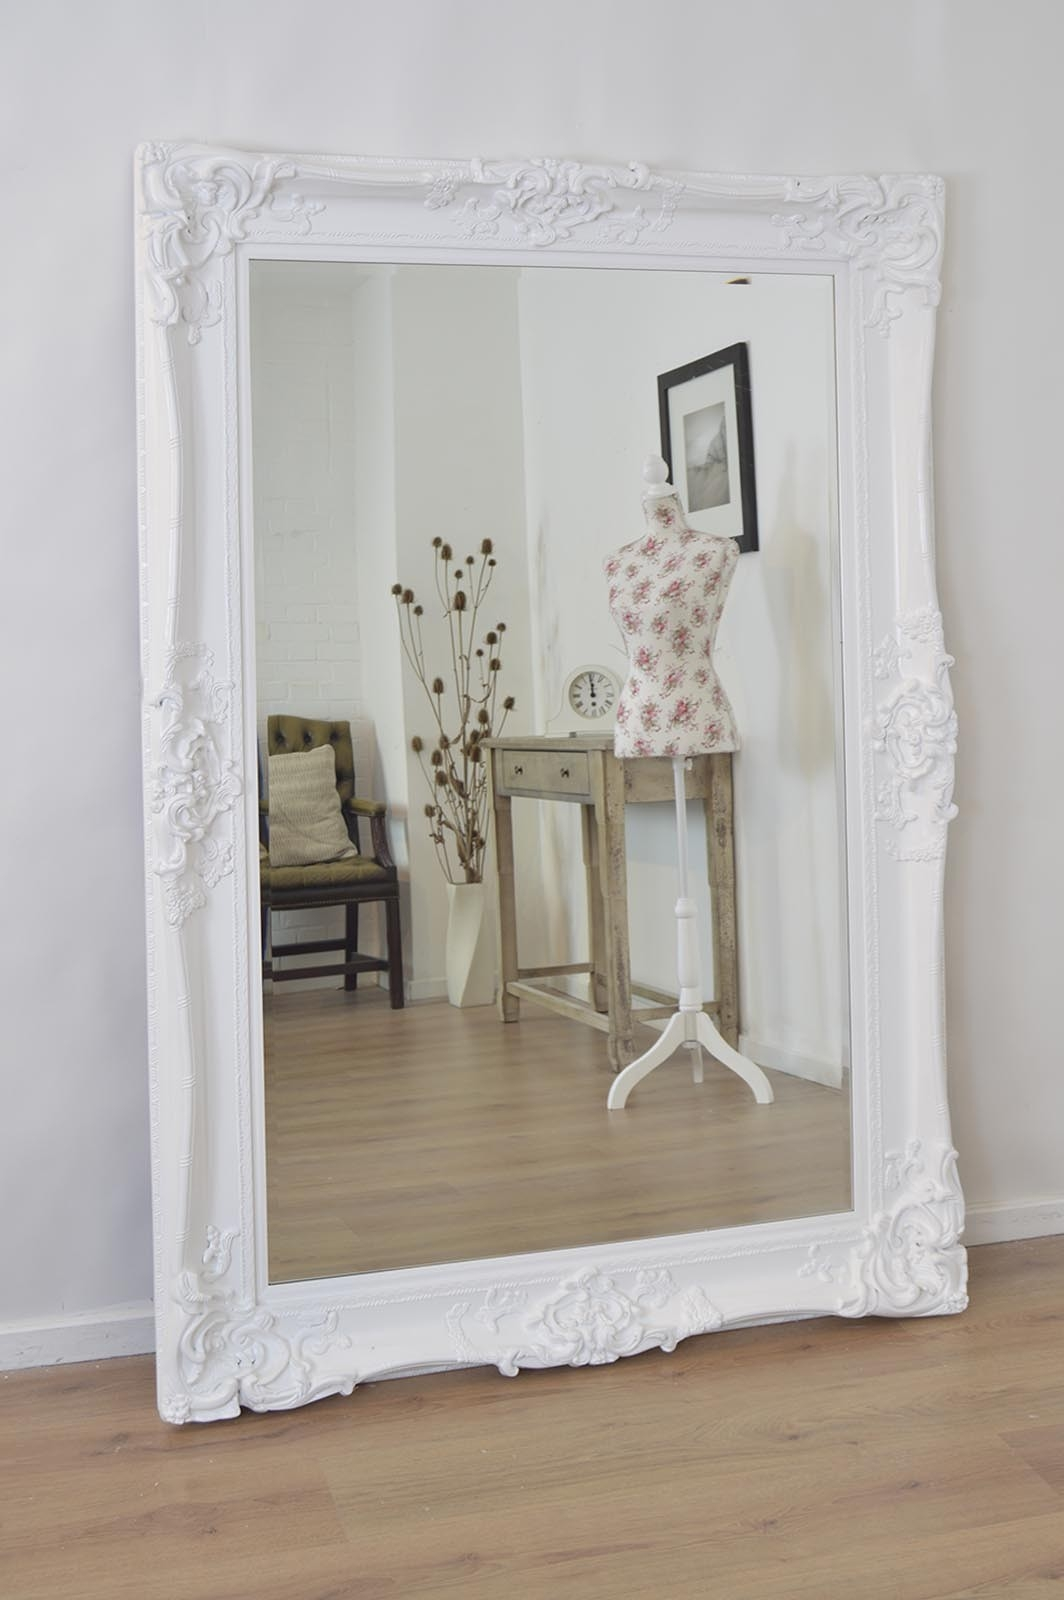 Large White Antique Shab Chic Ornate Wall Mirror 6ft X 4ft With Regard To Large White Ornate Mirror (View 4 of 15)